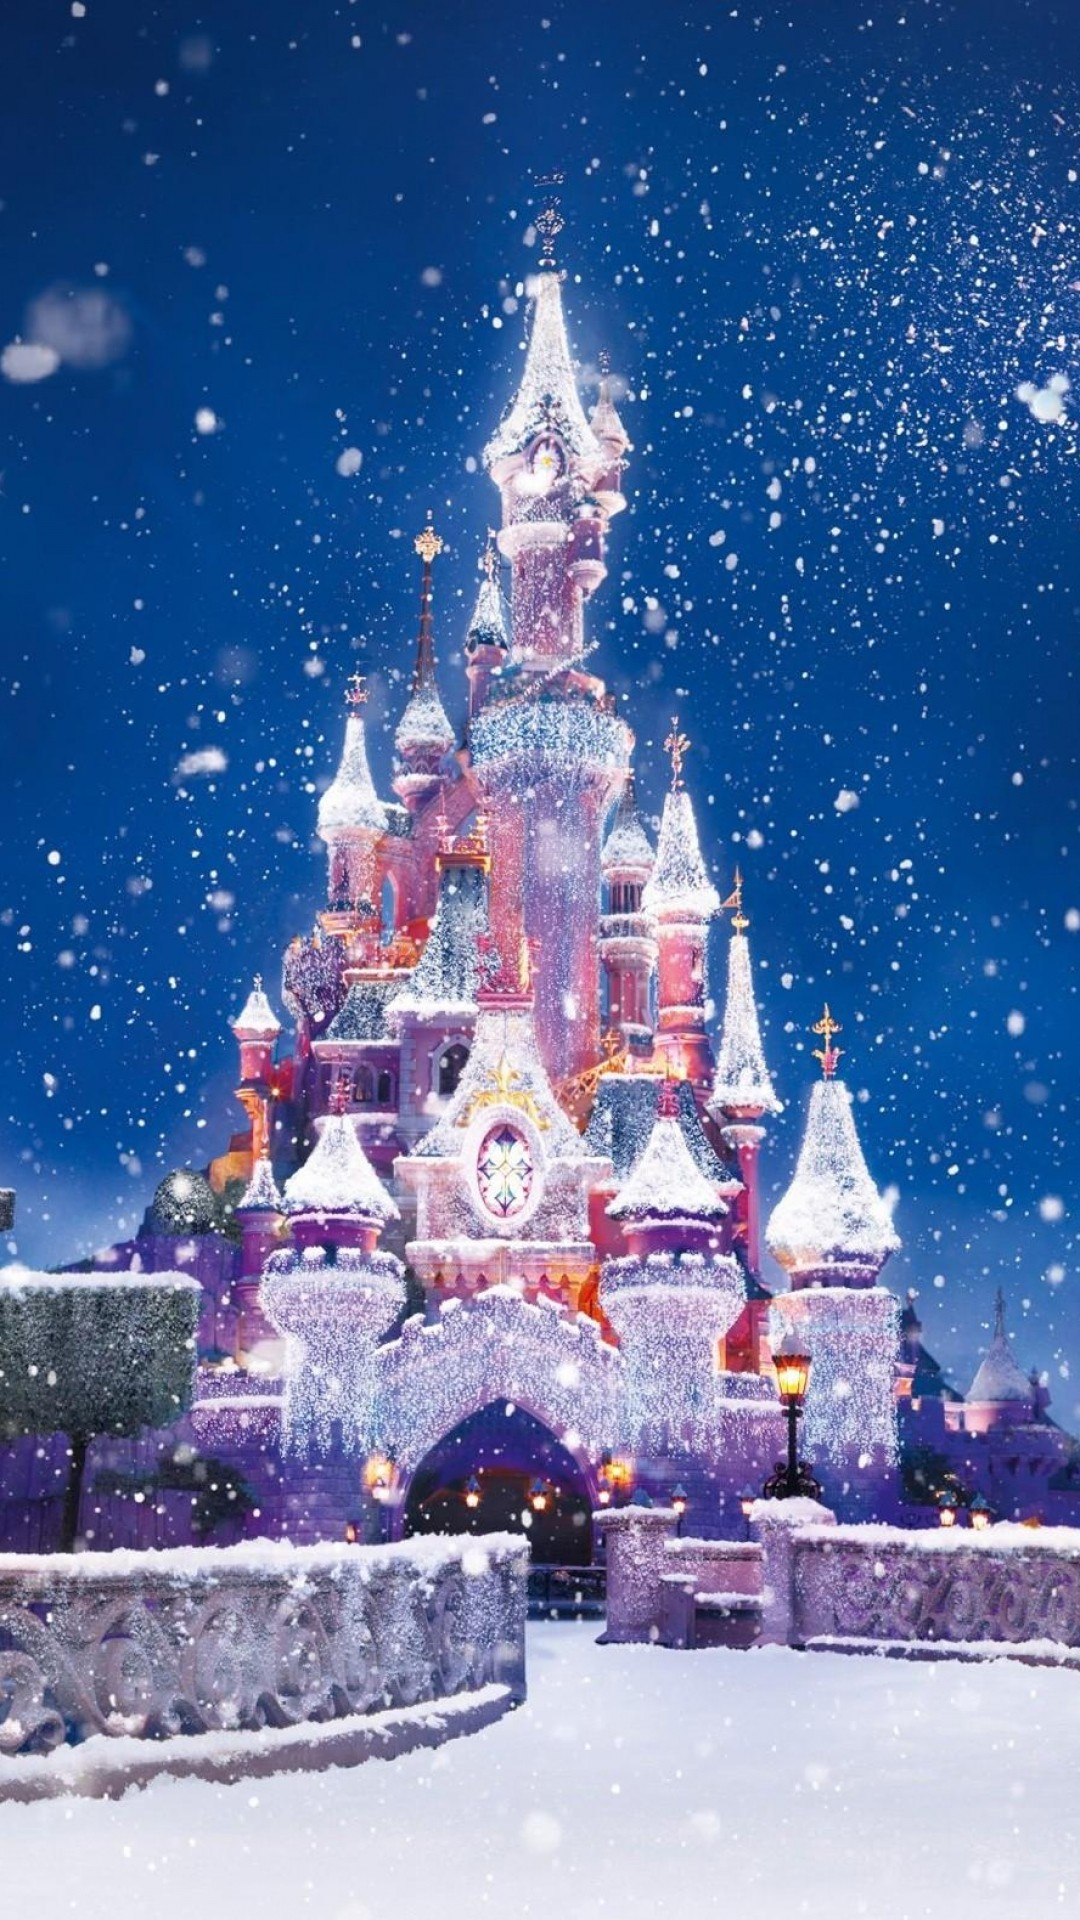 1080x1920 Disney Castle Christmas Lights Snow Android Wallpaper ...